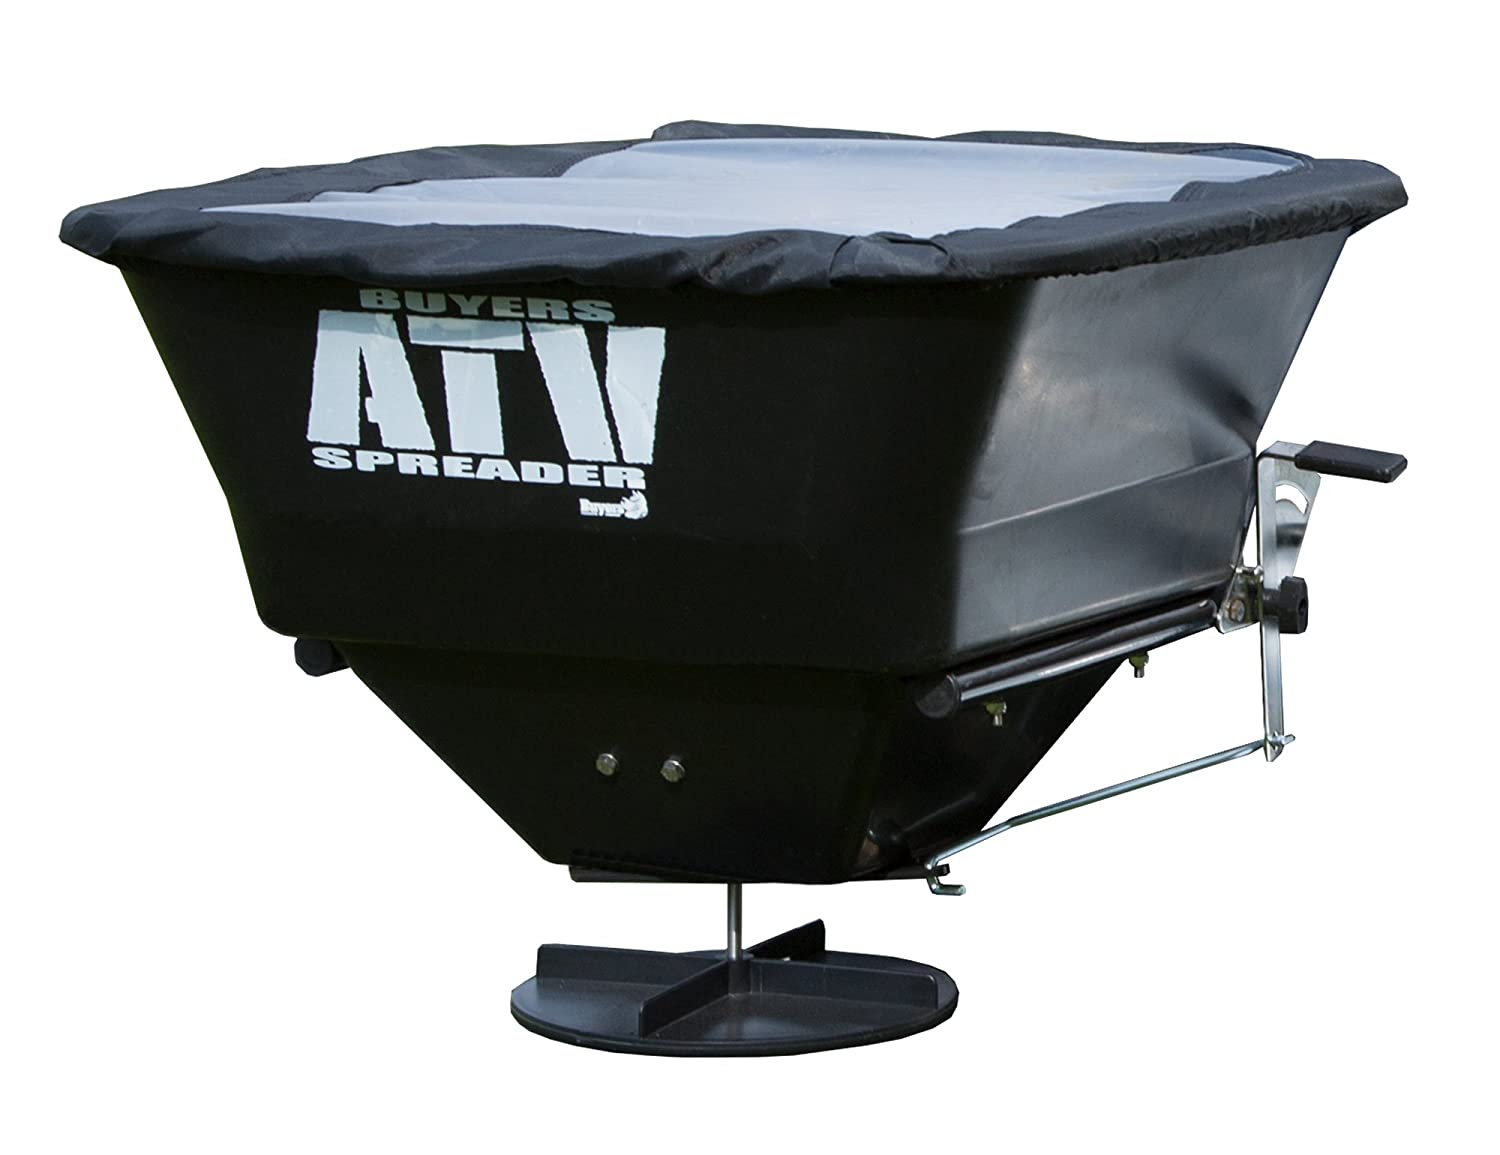 Buyers Products ATVS100 ATV All-Purpose Broadcast Spreader 100 lbs. Capacity with Rain Cover